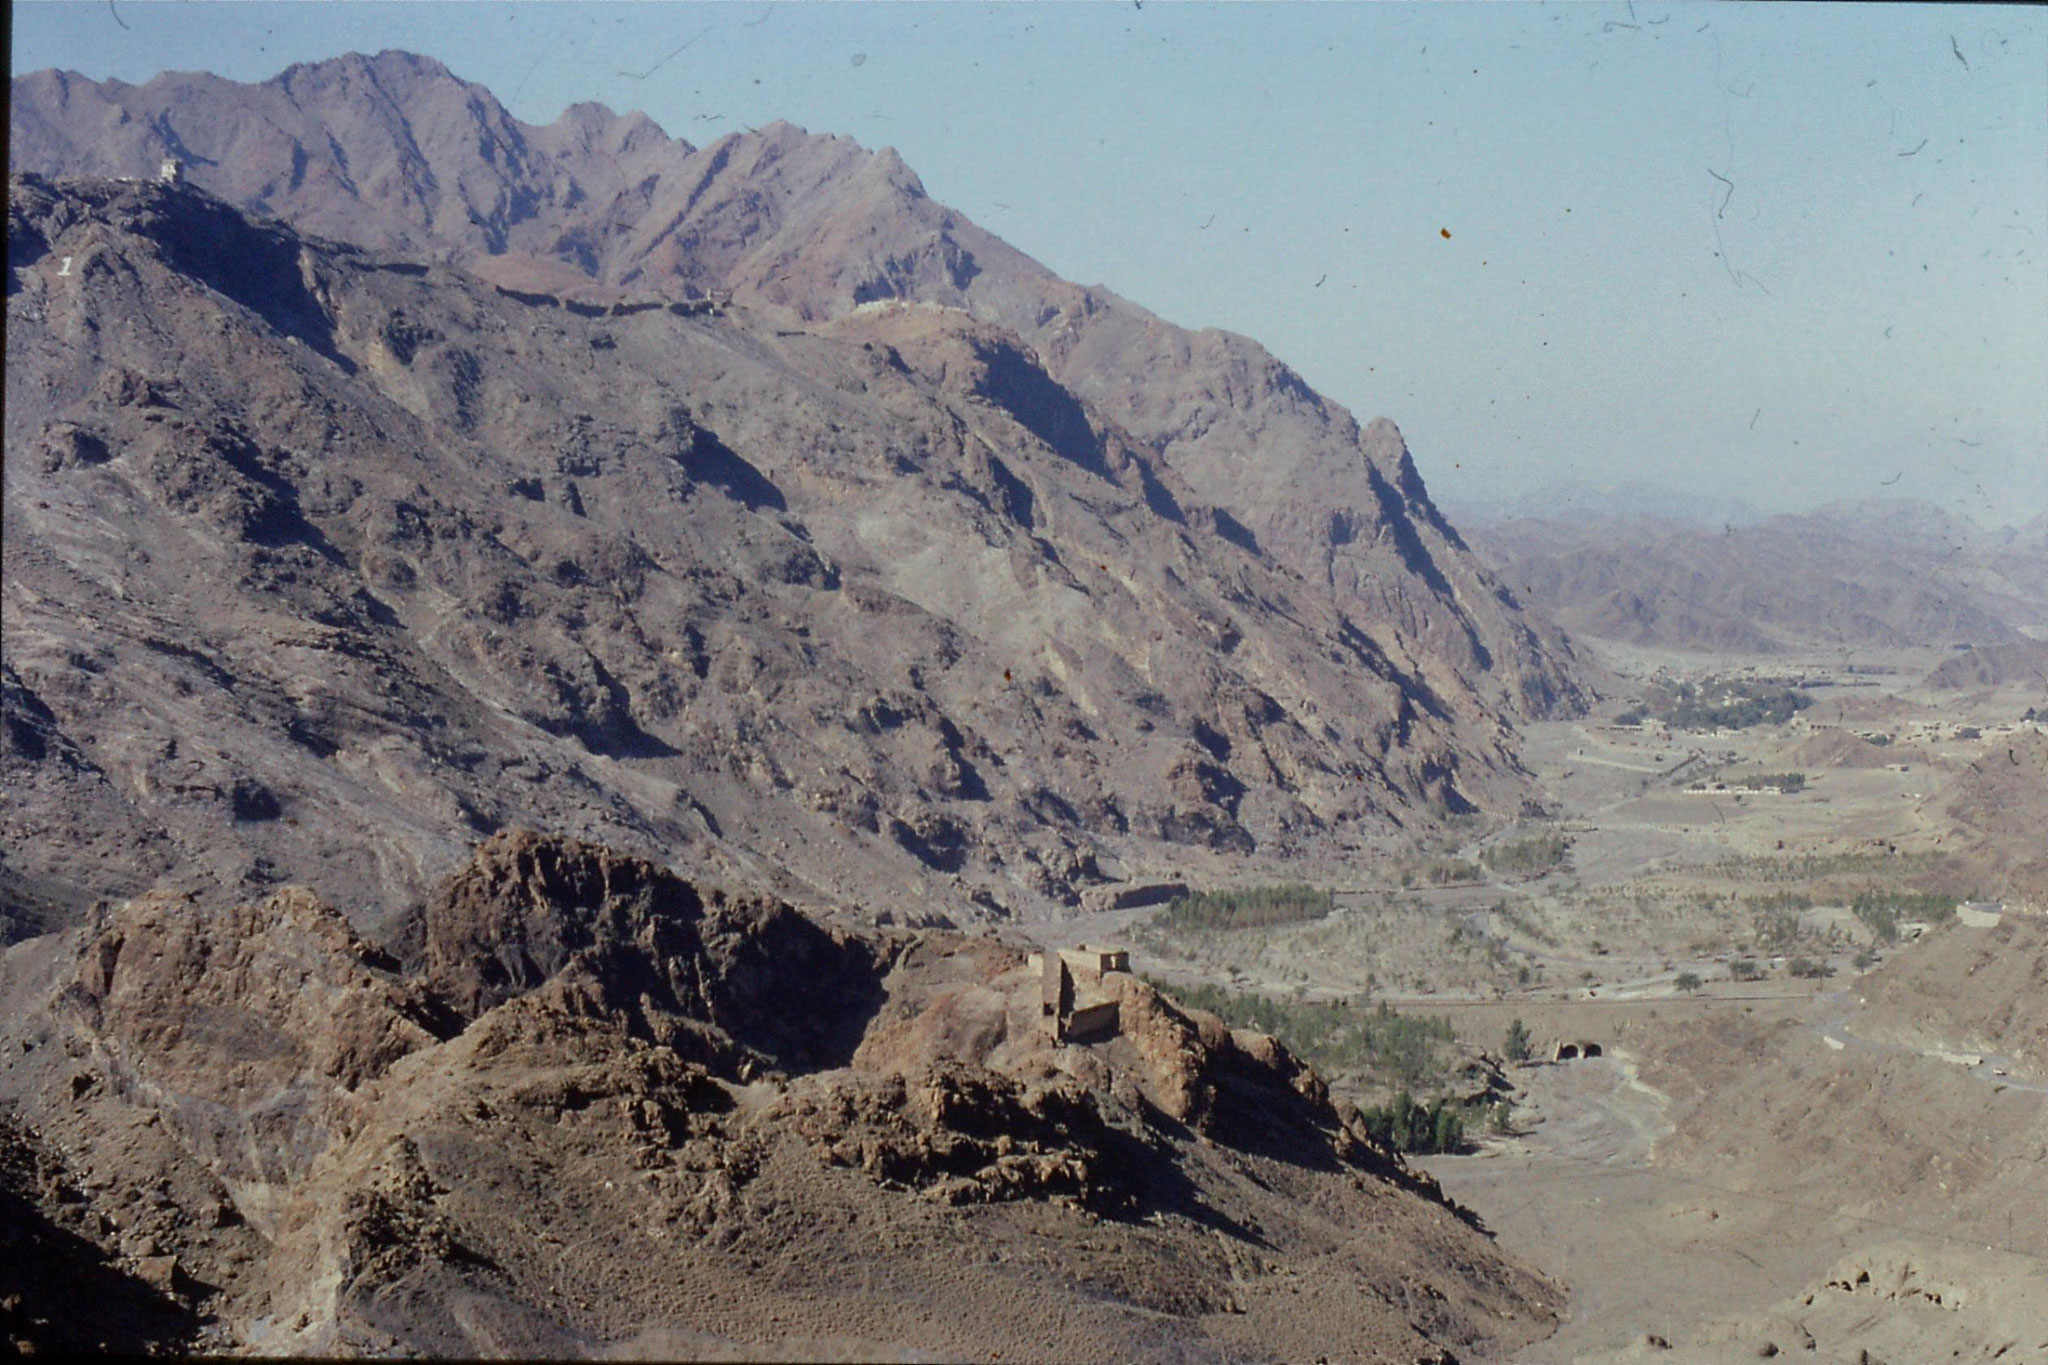 6/11/1989: 19: Khyber Pass road